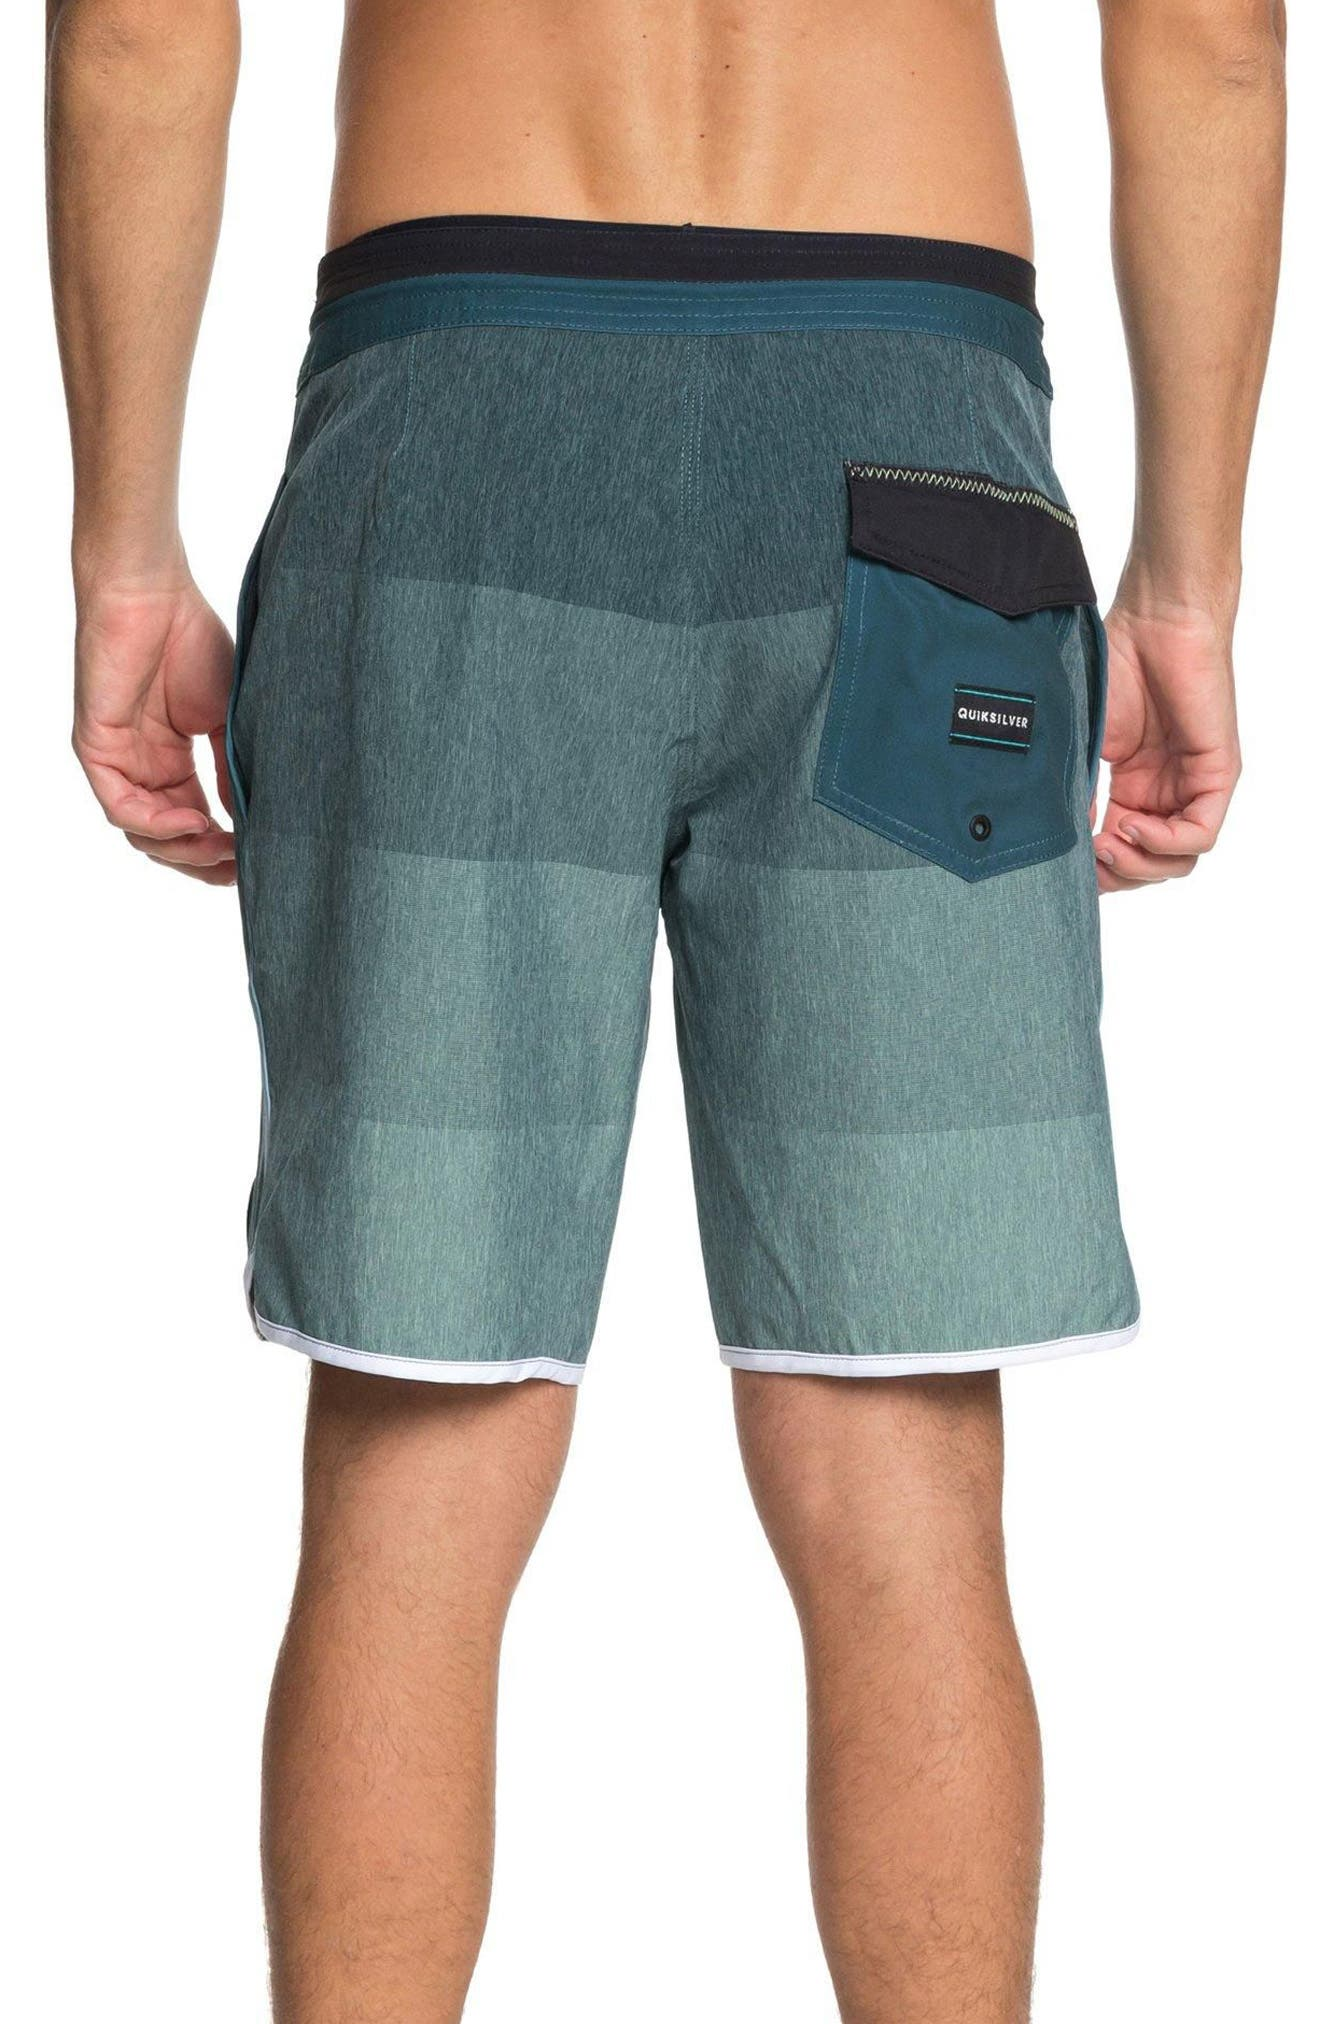 Vista Swim Shorts,                             Alternate thumbnail 2, color,                             406